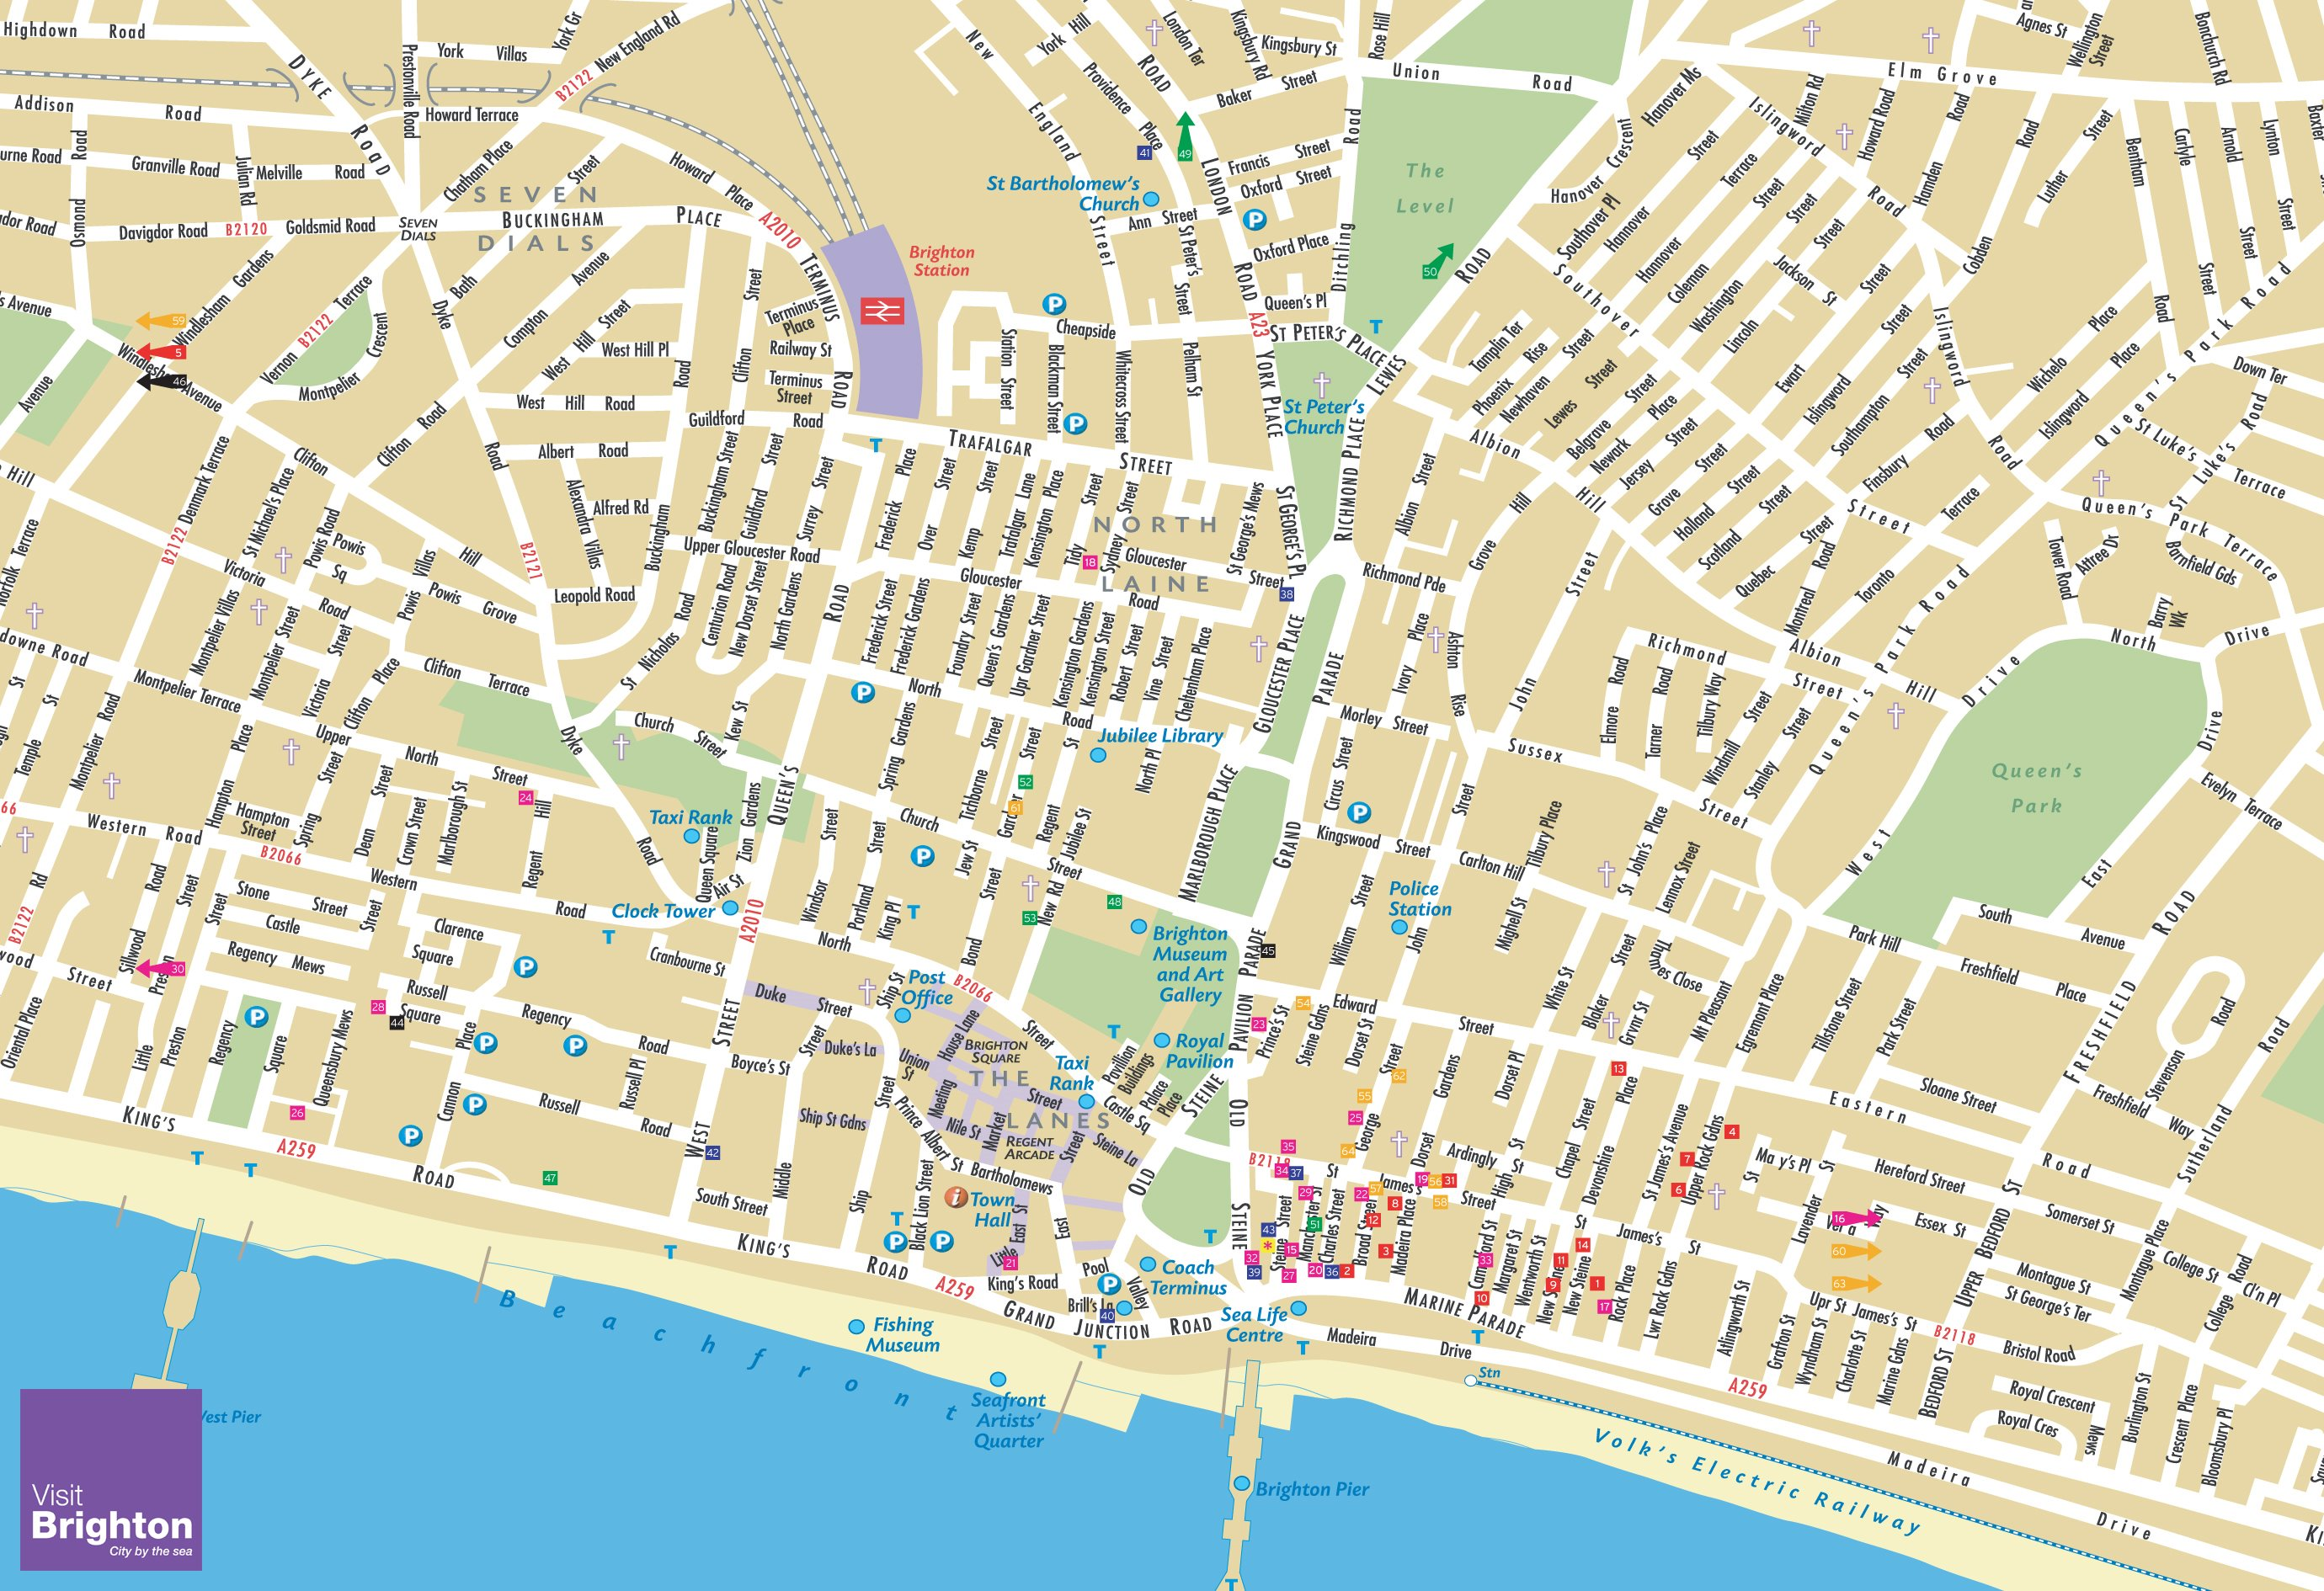 Map Of England Brighton.Large Brighton Maps For Free Download High Resolution And Detailed